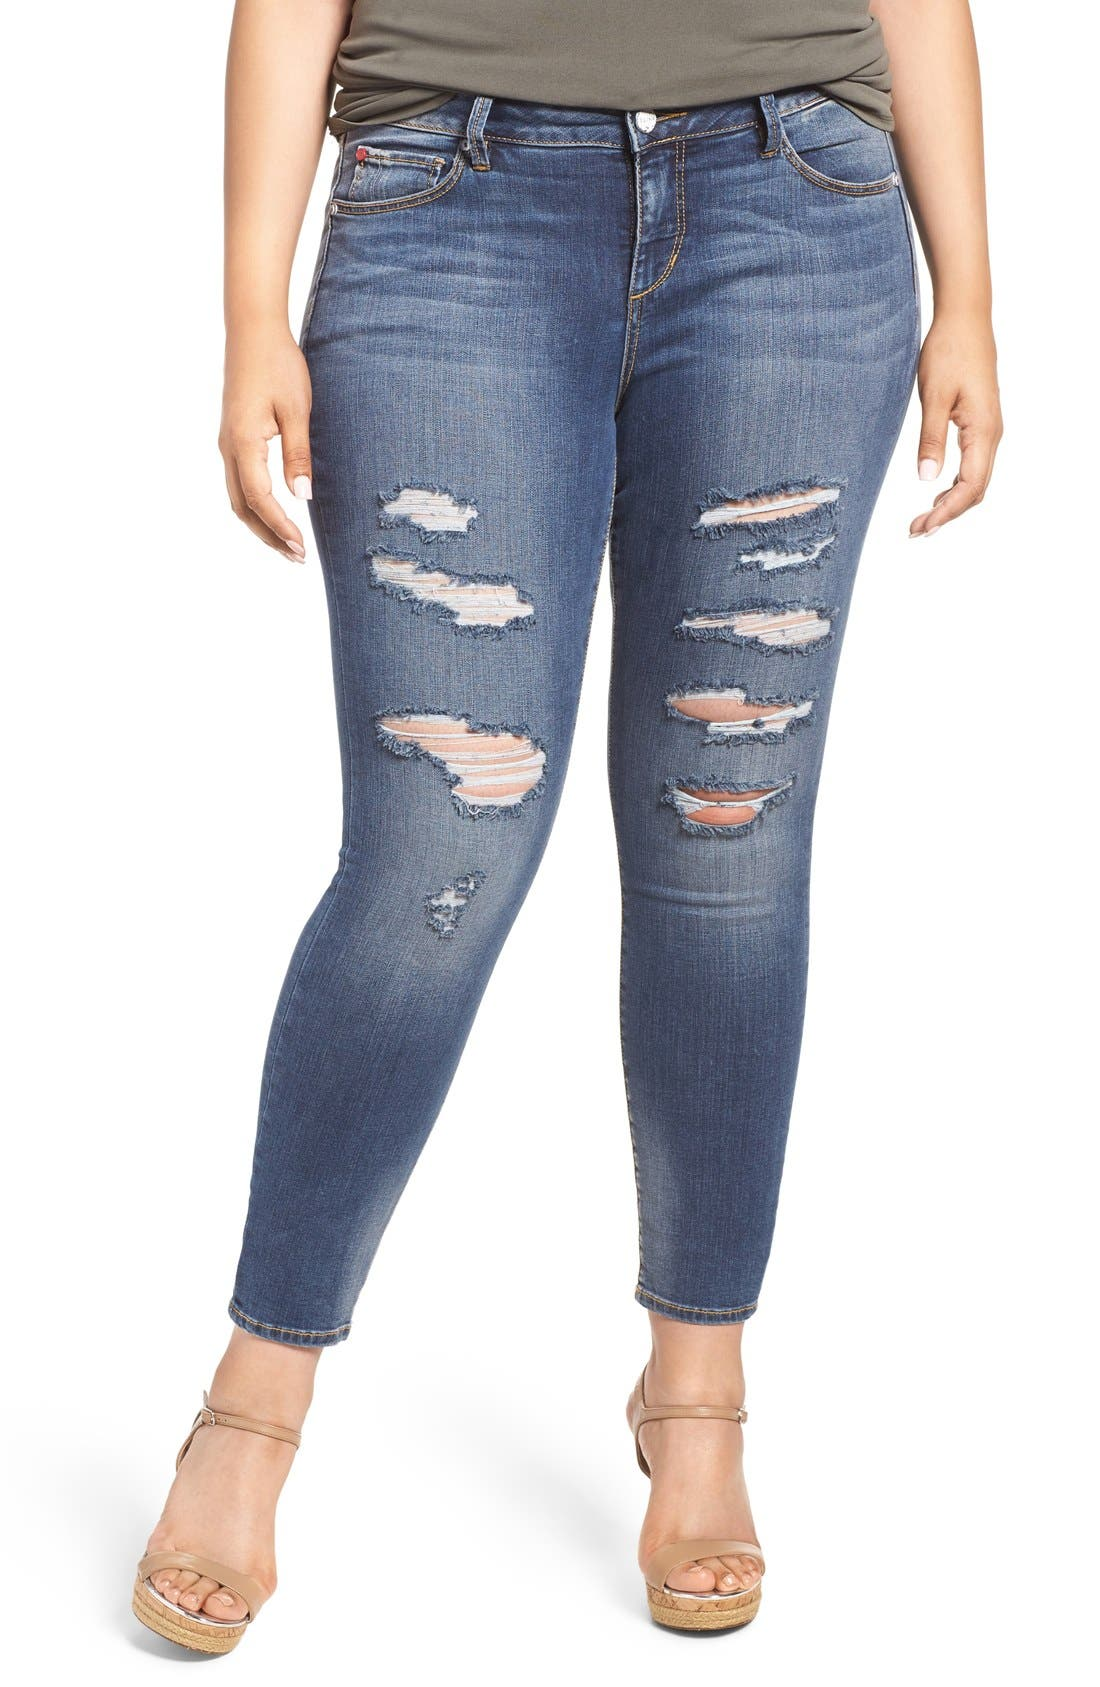 Main Image - SLINK Jeans Ripped Stretch Ankle Skinny Jeans (Danika) (Plus Size)